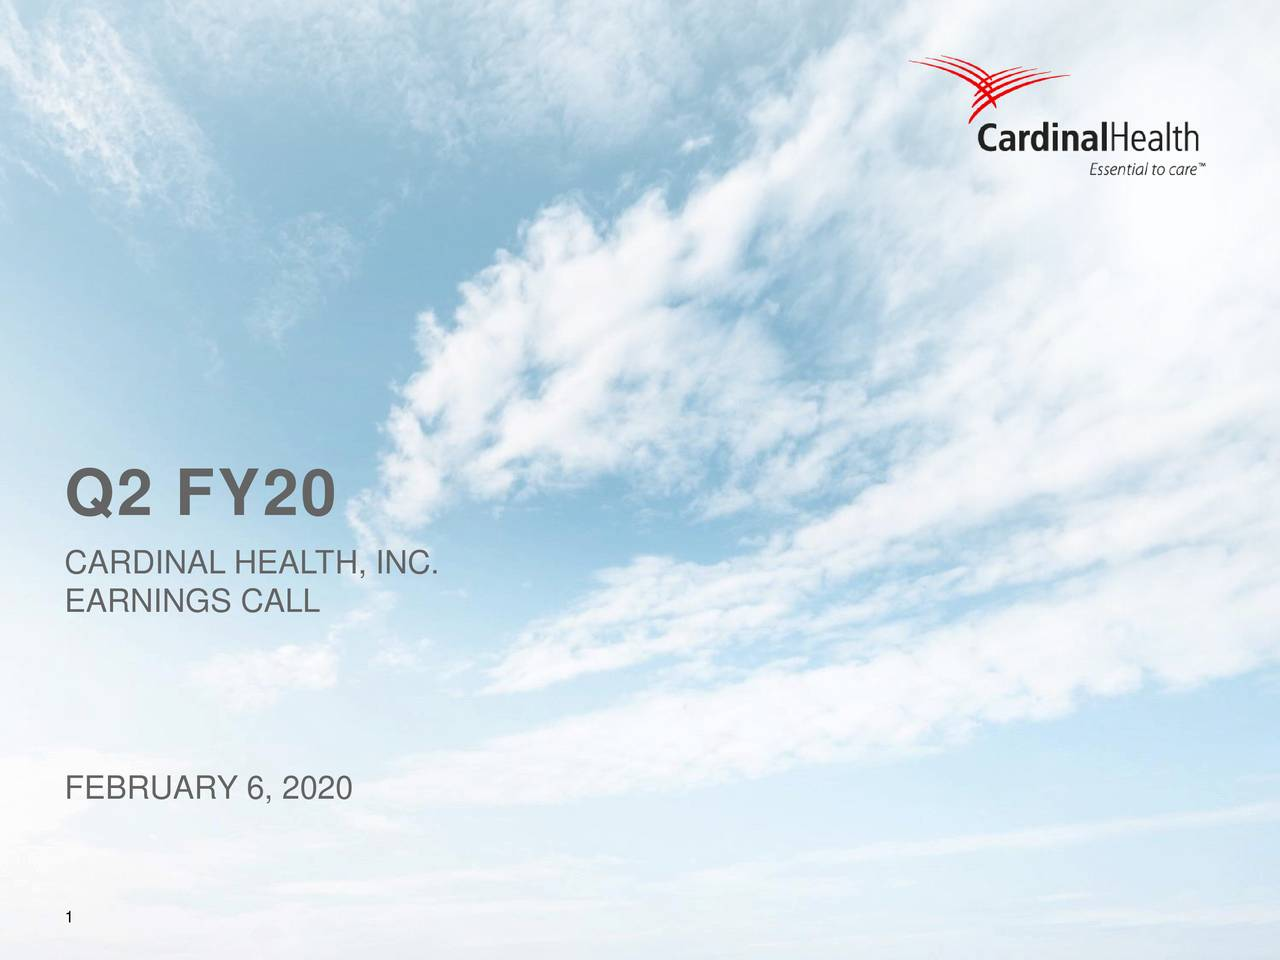 Cardinal Health, Inc. 2020 Q2 - Results - Earnings Call Presentation - Cardinal Health, Inc. (NYSE:CAH) | Seeking Alpha